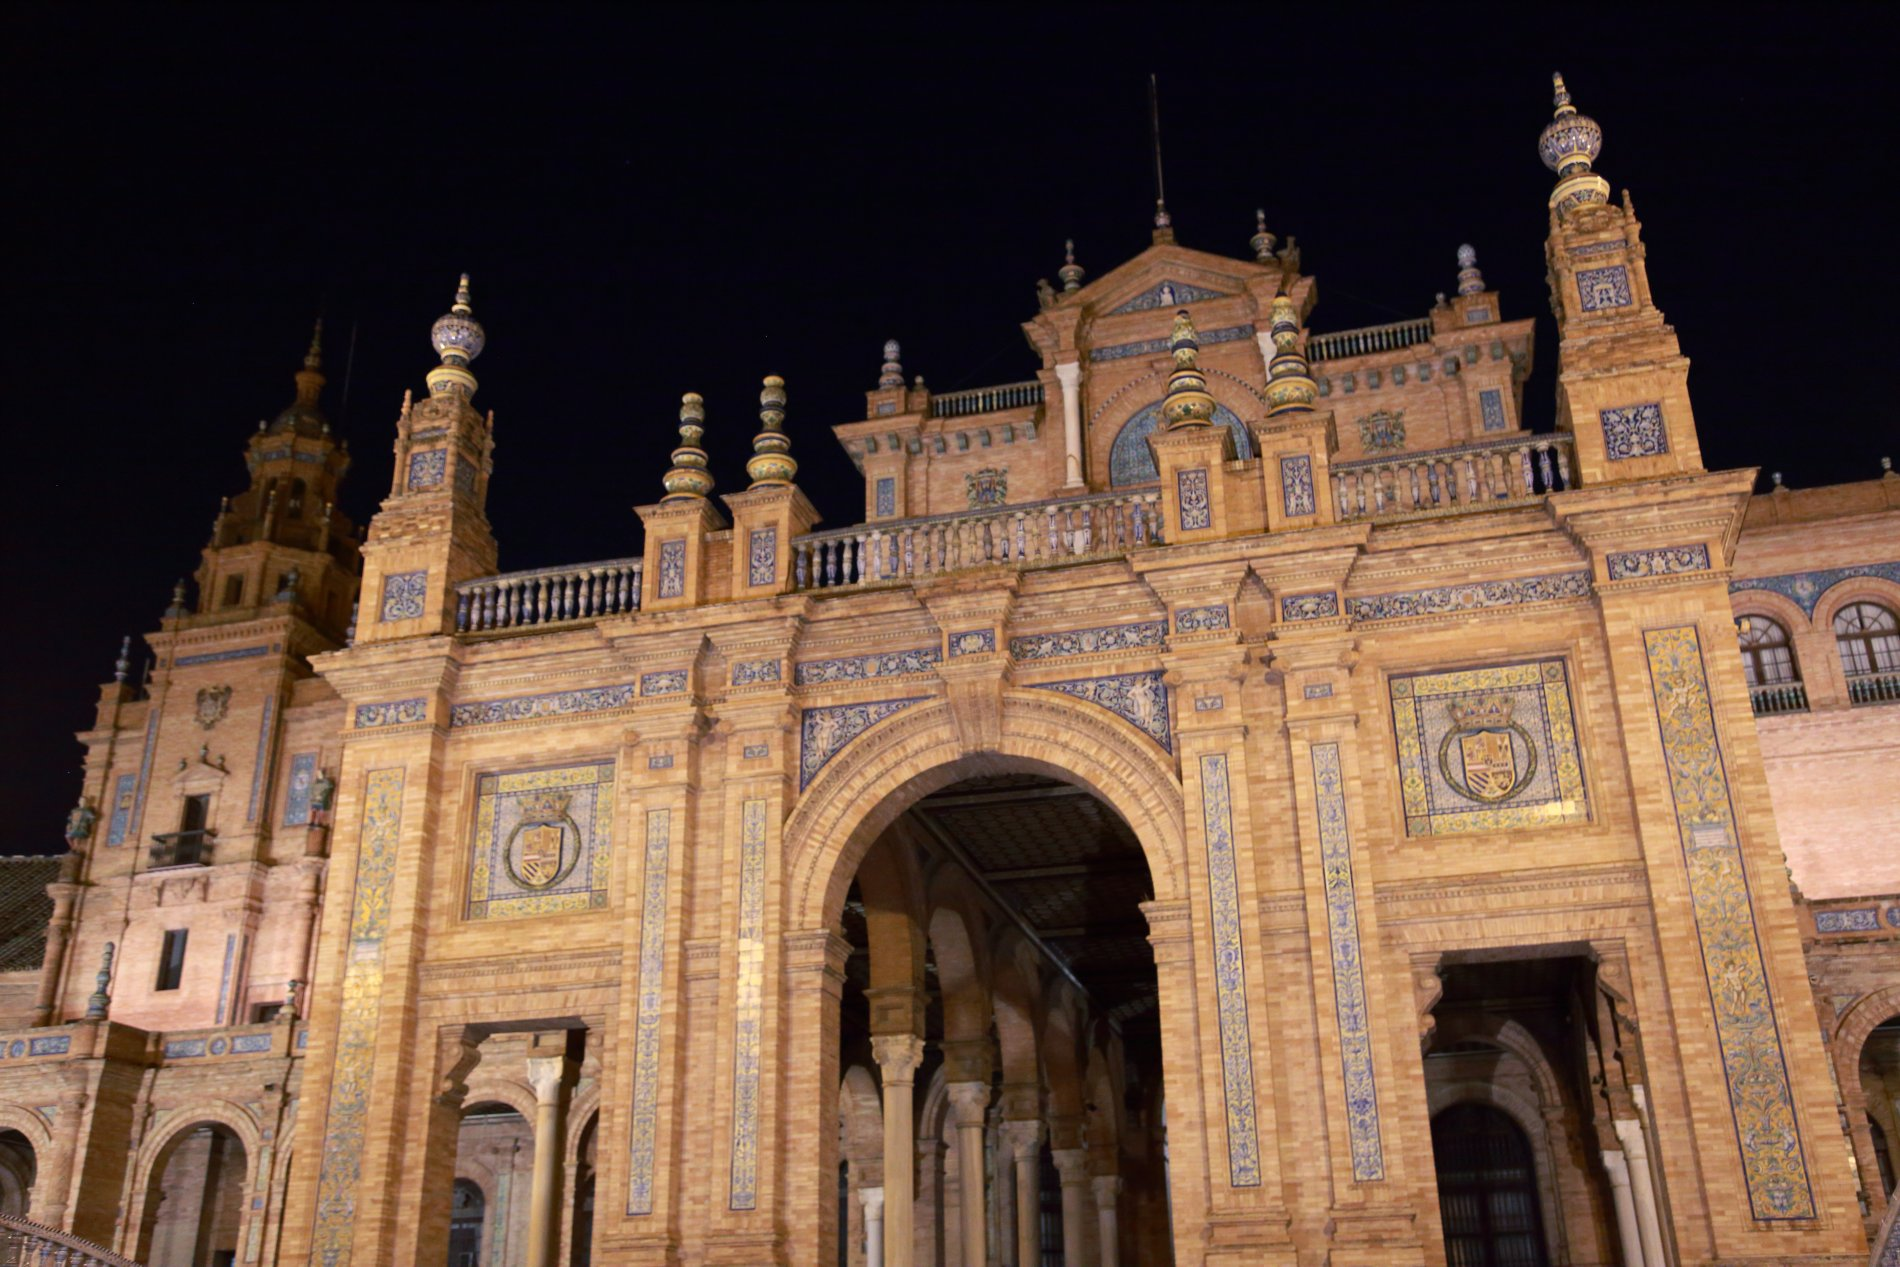 Seville-91.JPG-commment